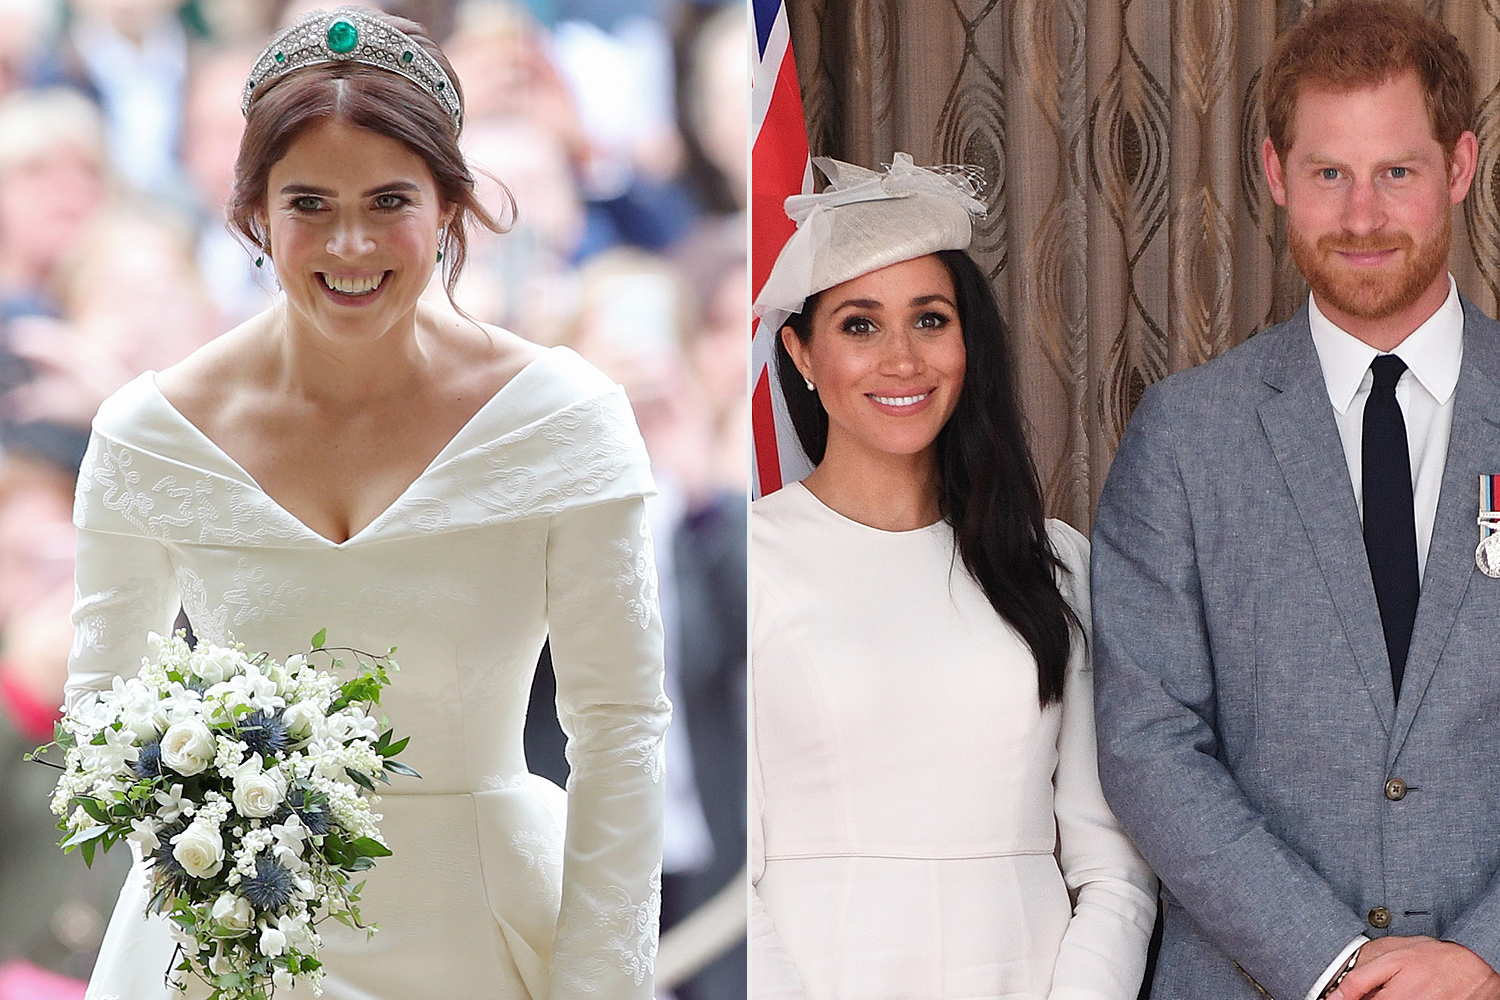 Princess Eugenie, Meghan and Harry